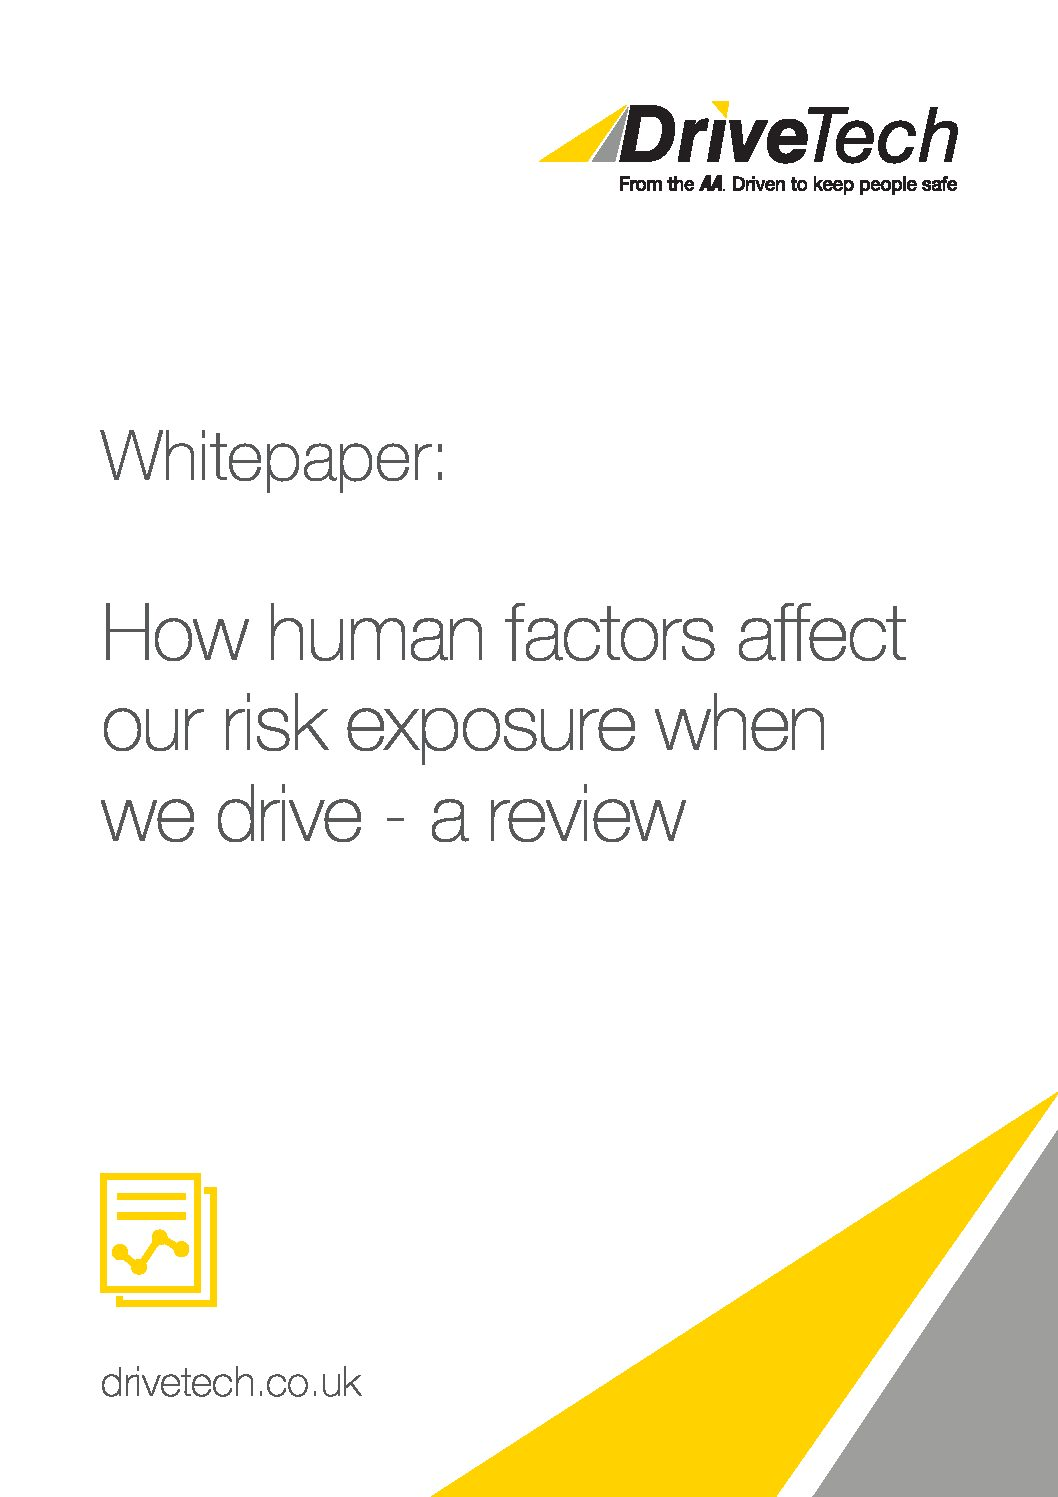 Whitepaper – How Human Factors Affect Risk Exposure When We Drive